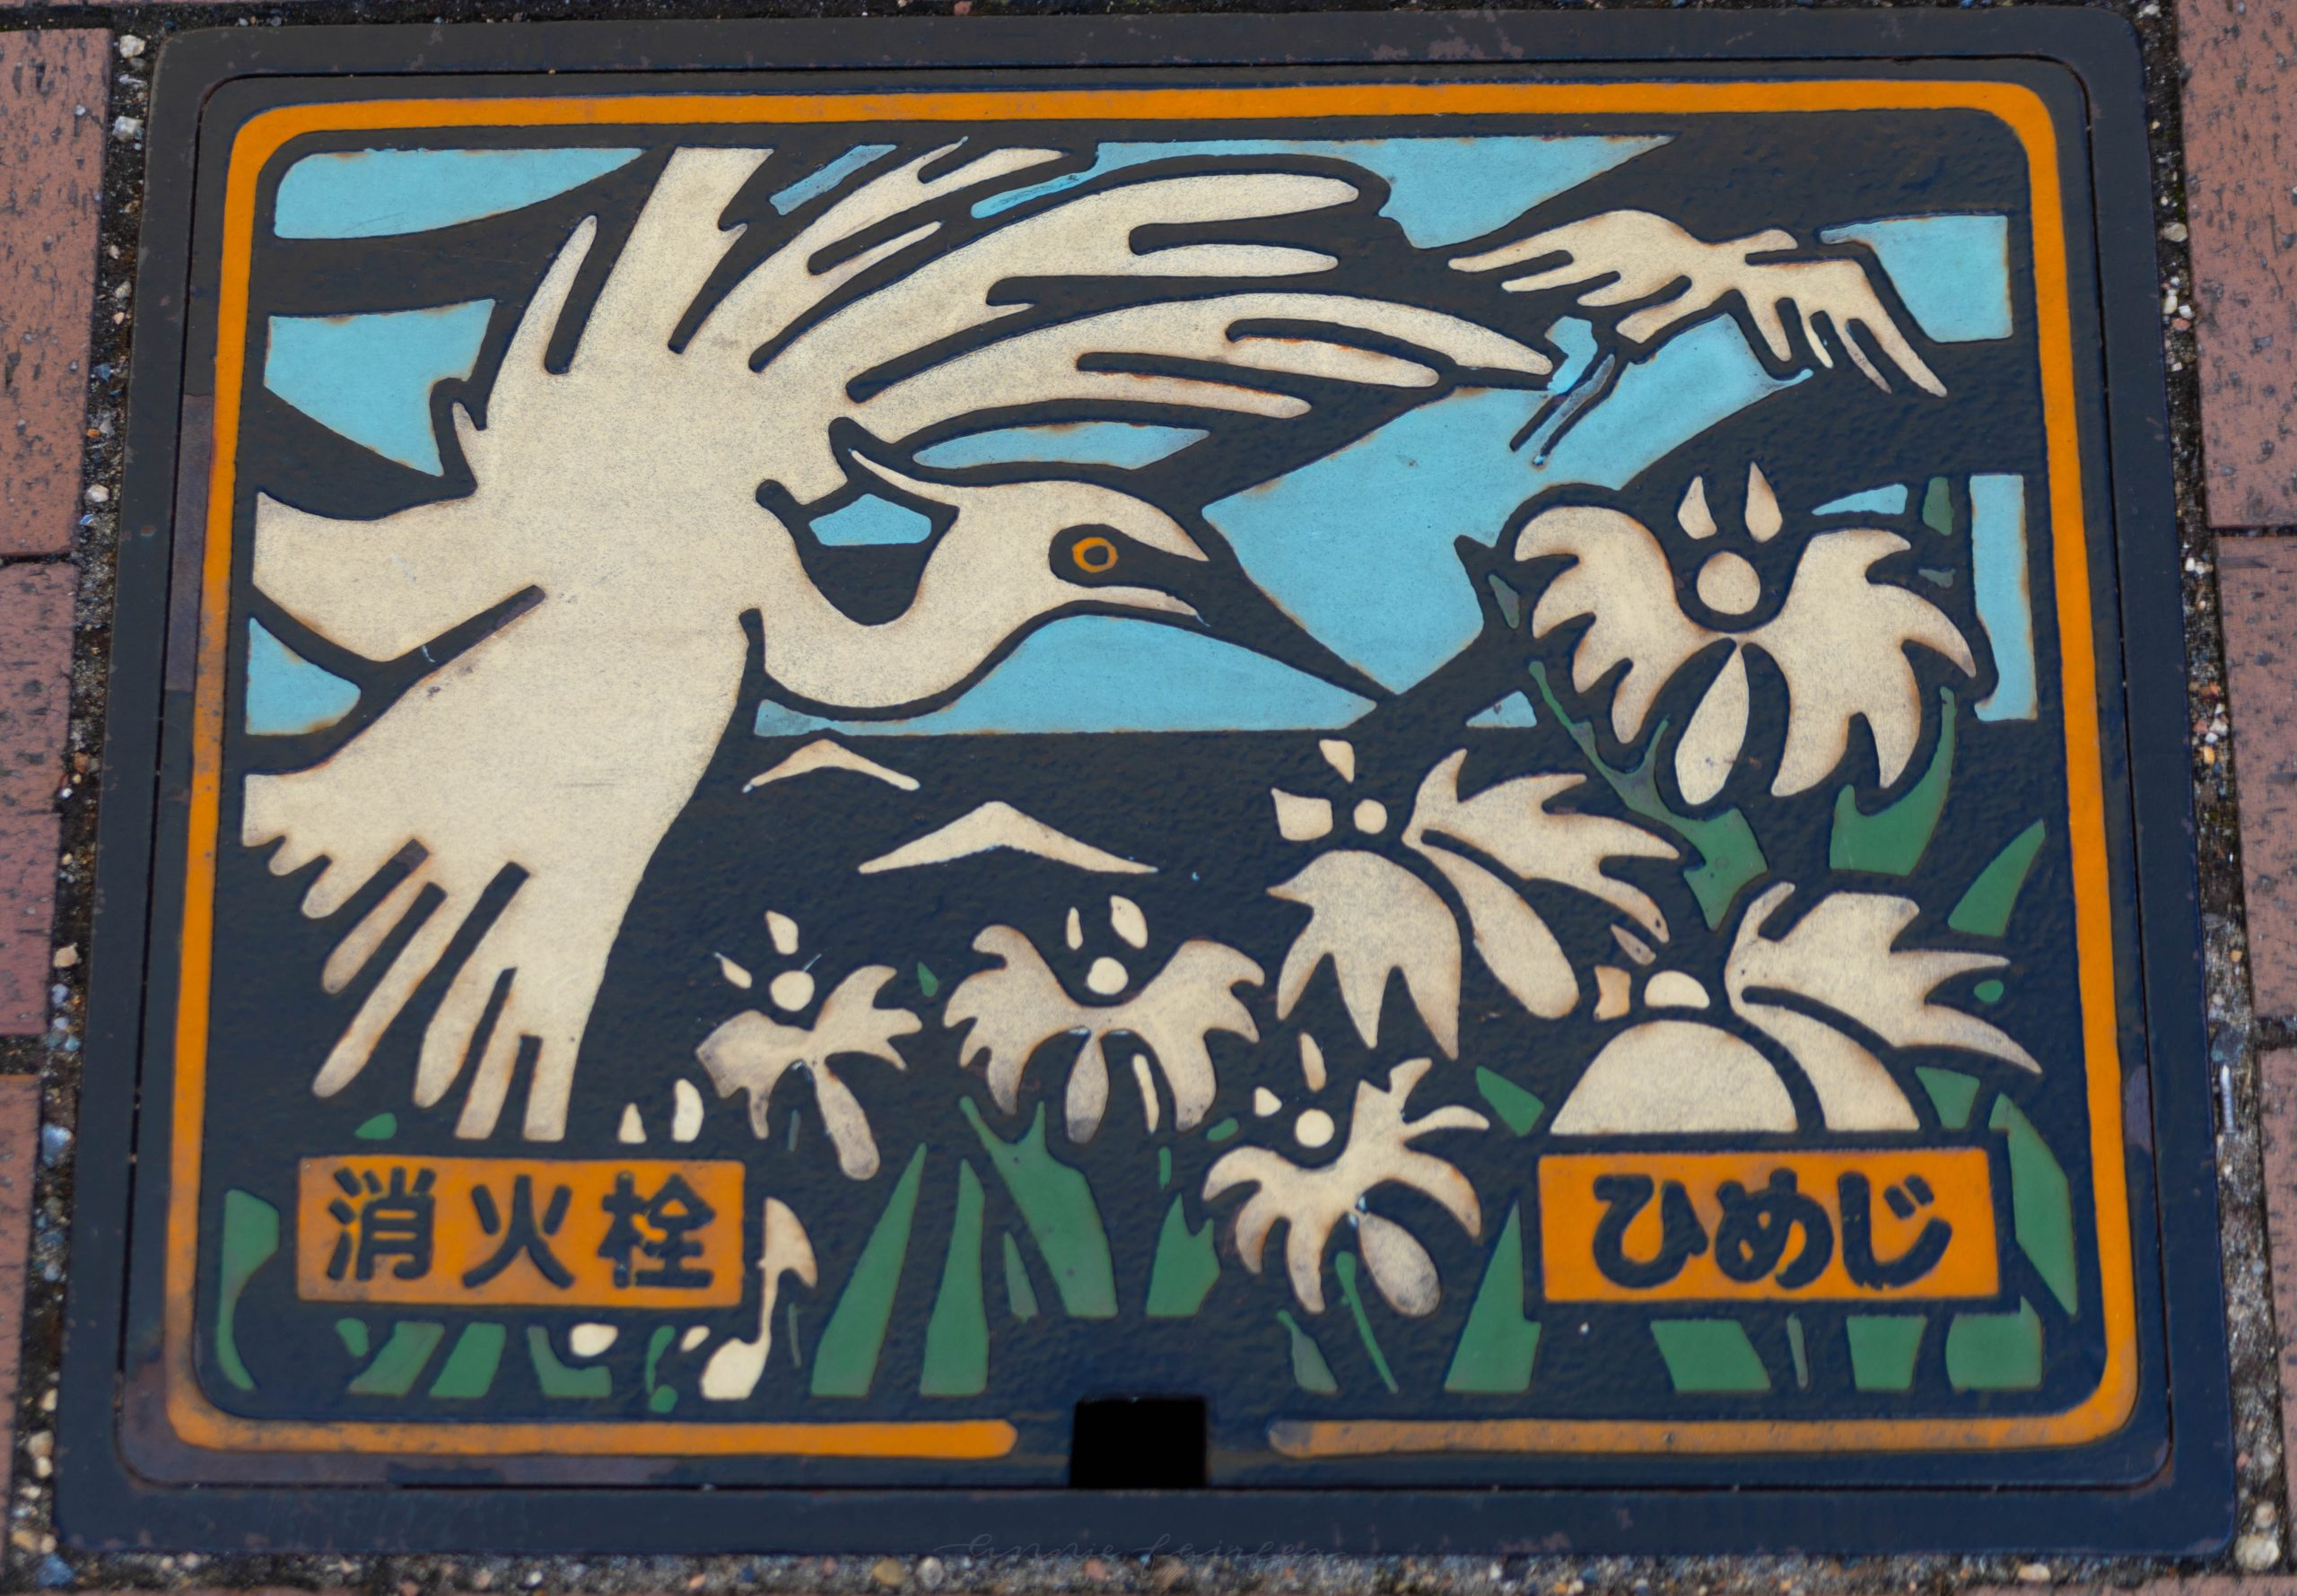 White Heron on Sewer Grate Near Himeji Castle Cherry Blossom Season in Hemeji Japan by @AnnieFairfax